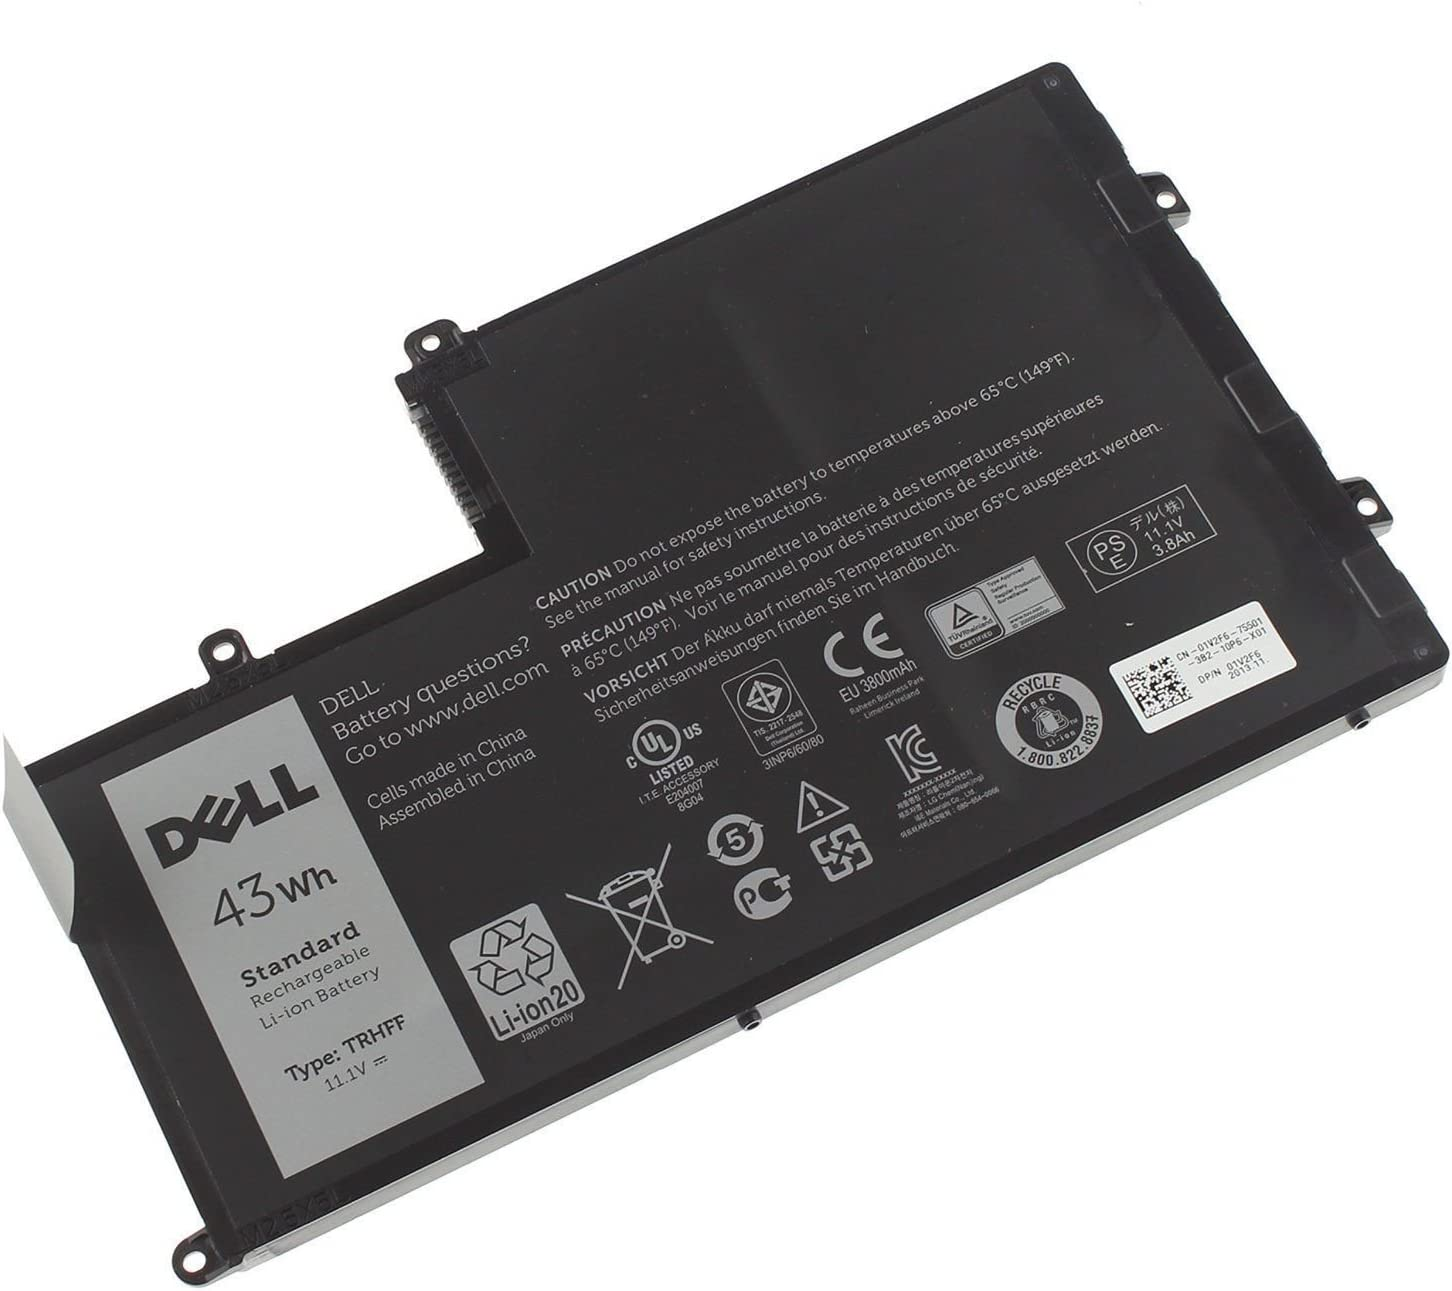 Dell Battery 43Whr 3Cell, 1WWHW, 1V2F6, 7P3X9, 9JF93, J0HDW,